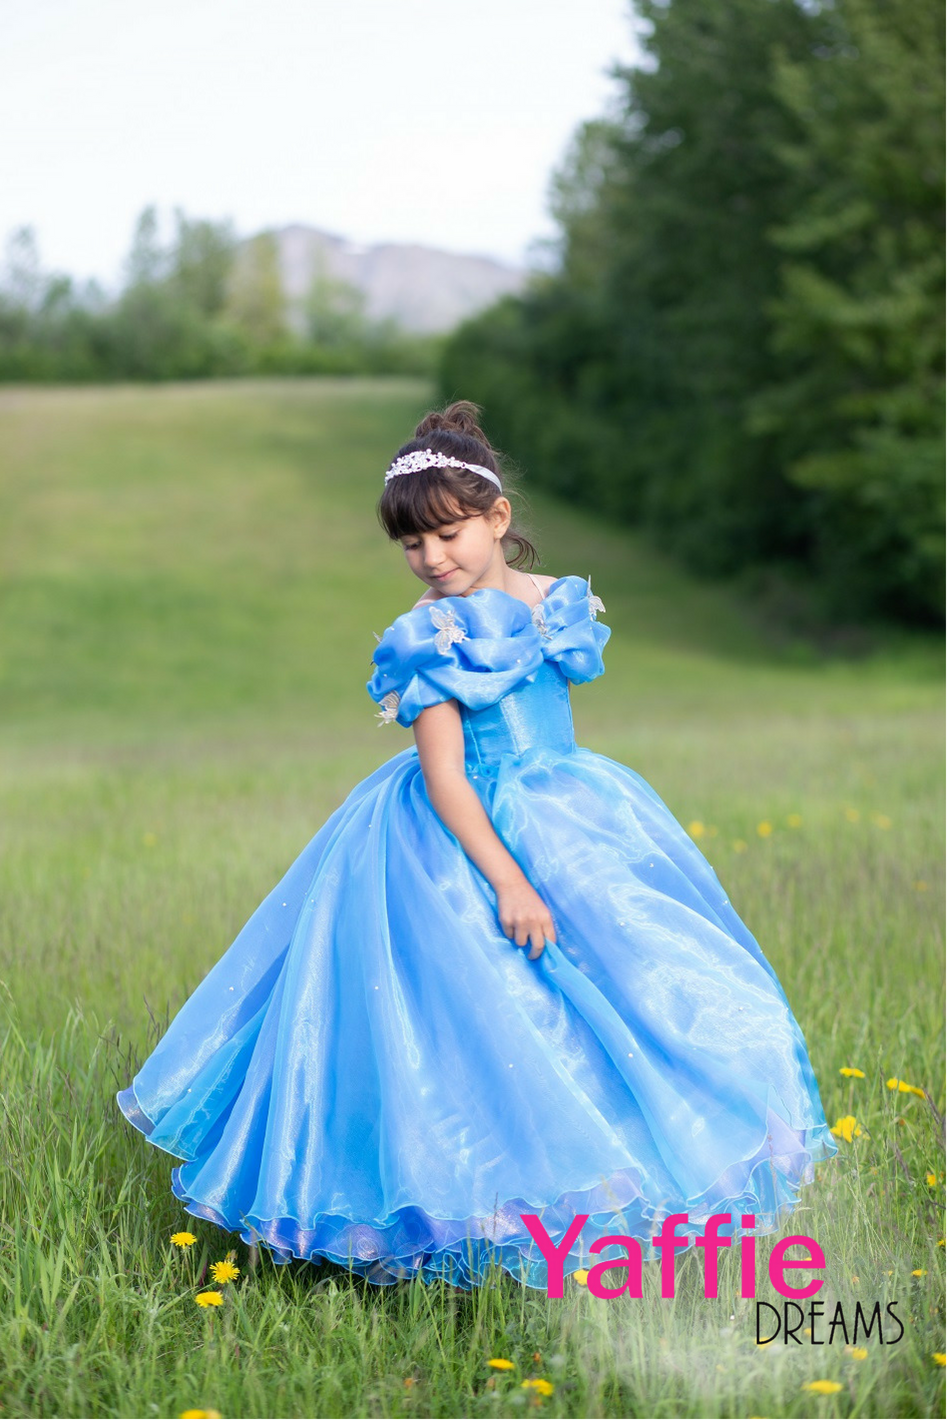 73d5a9b8c Disney princess Cinderella dress Disney cinderella 2015 movie dress ...